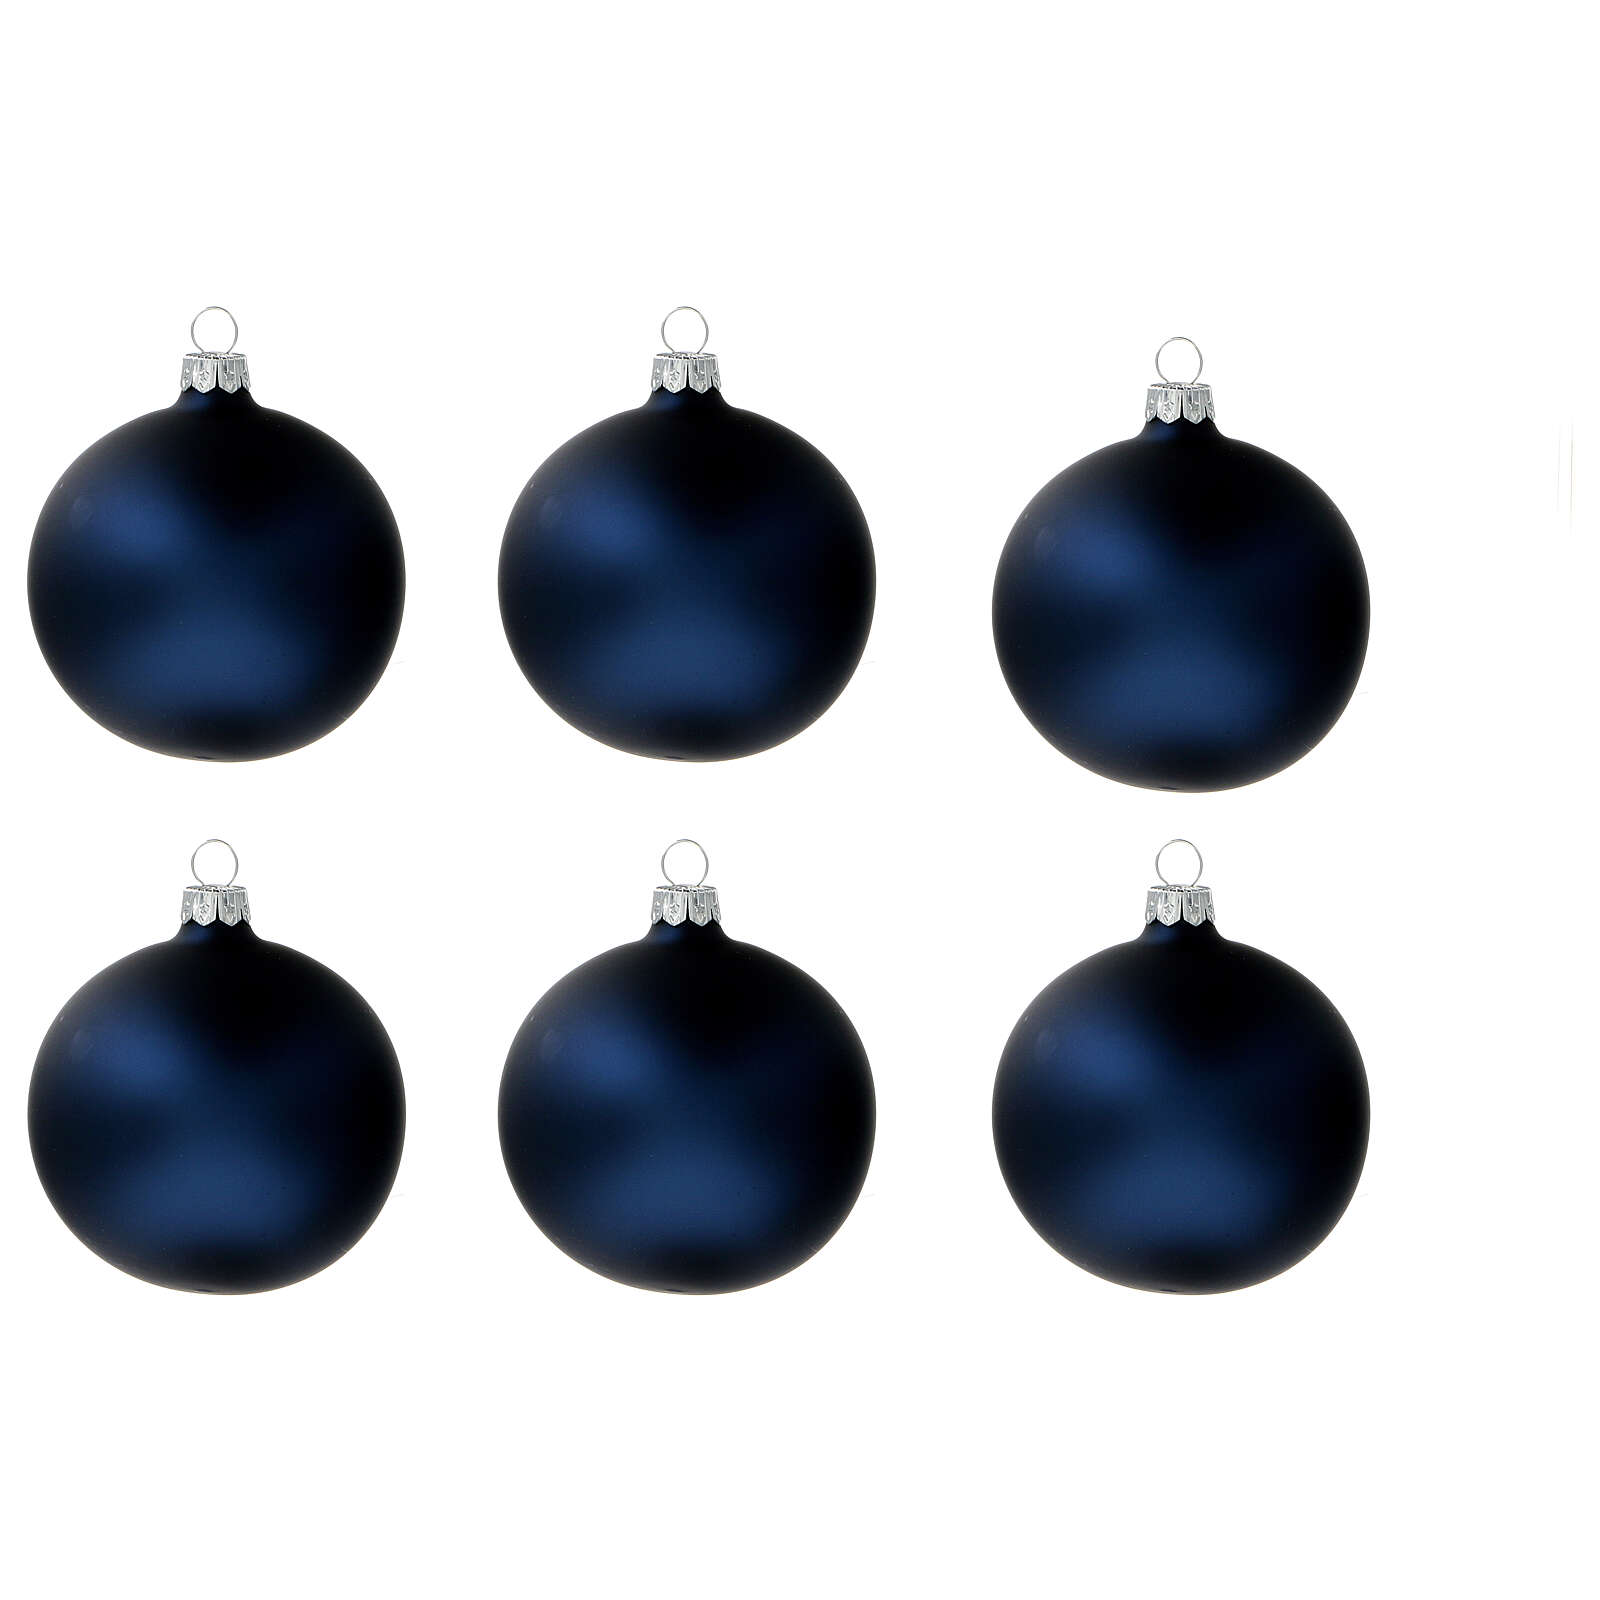 Christmas tree ornaments in matte blue 80 mm blown glass 6 pcs 4